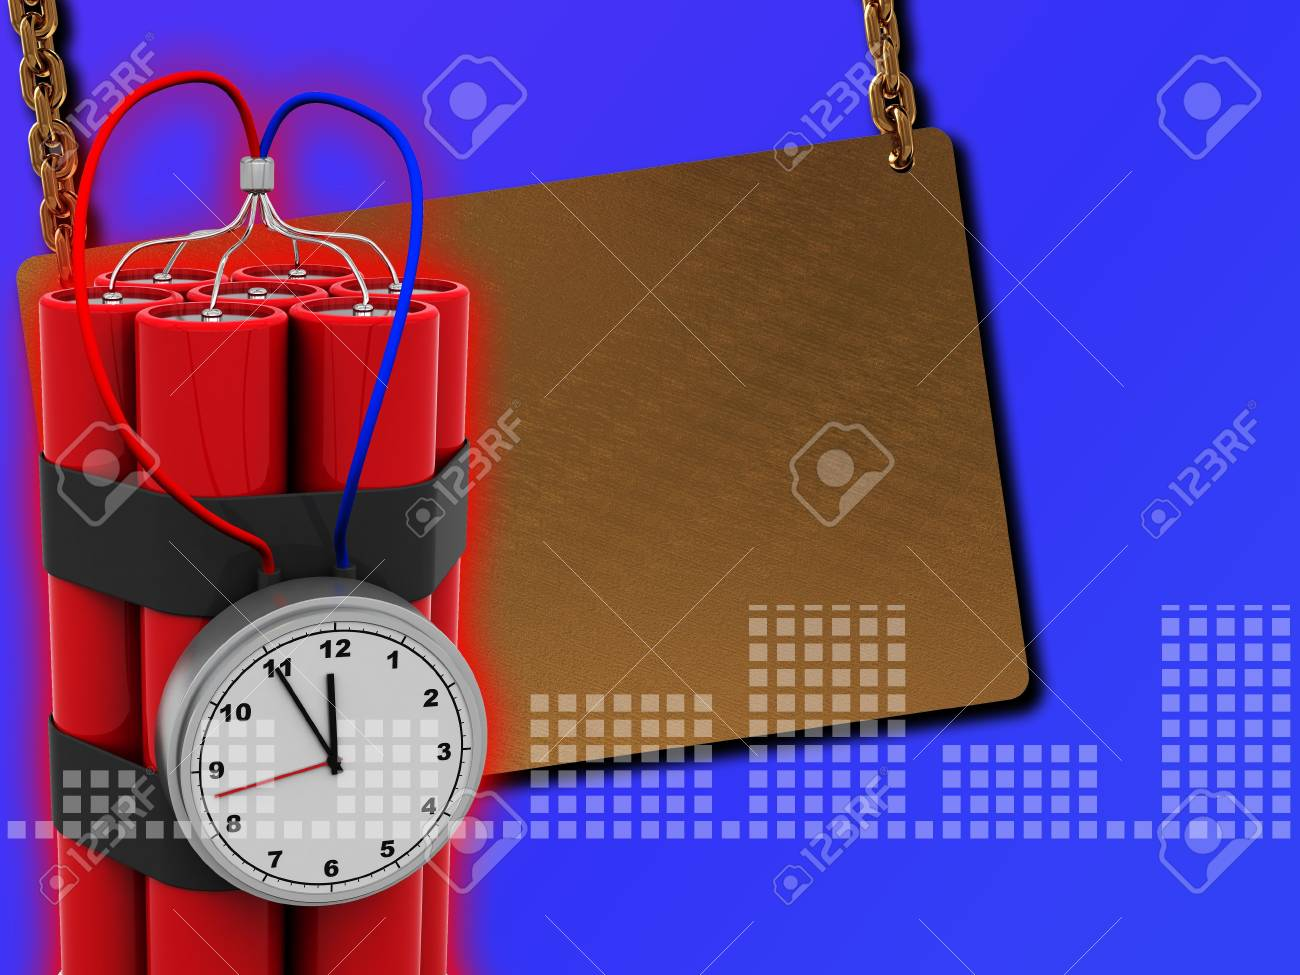 abstract 3d illustration of colorful background Stock Illustration - 5263822